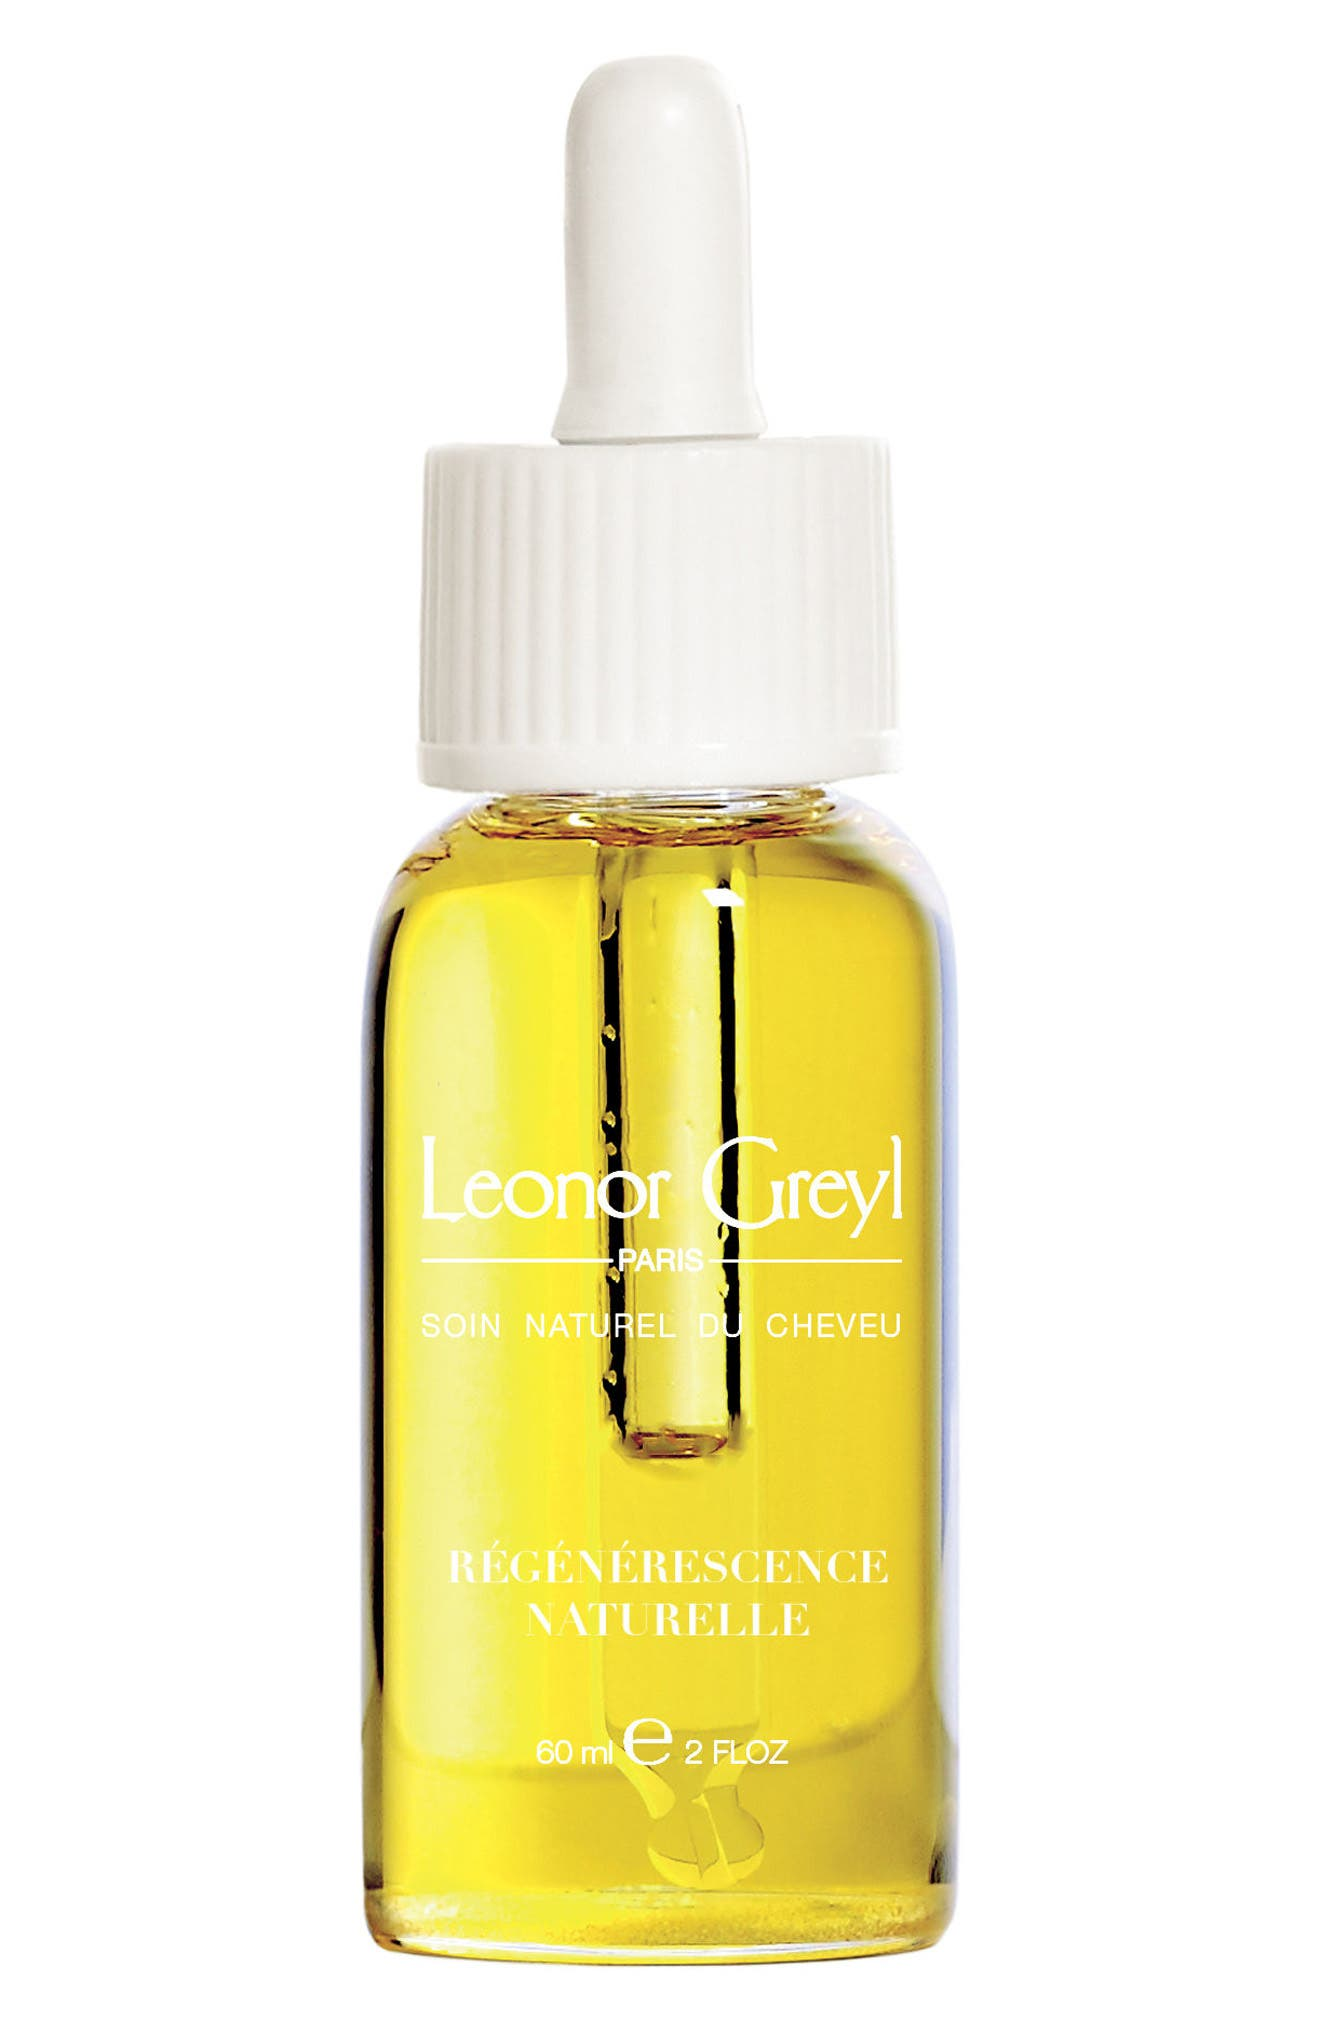 Leonor Greyl PARIS 'Régénérescence Naturelle' Pre-Shampoo Treatment